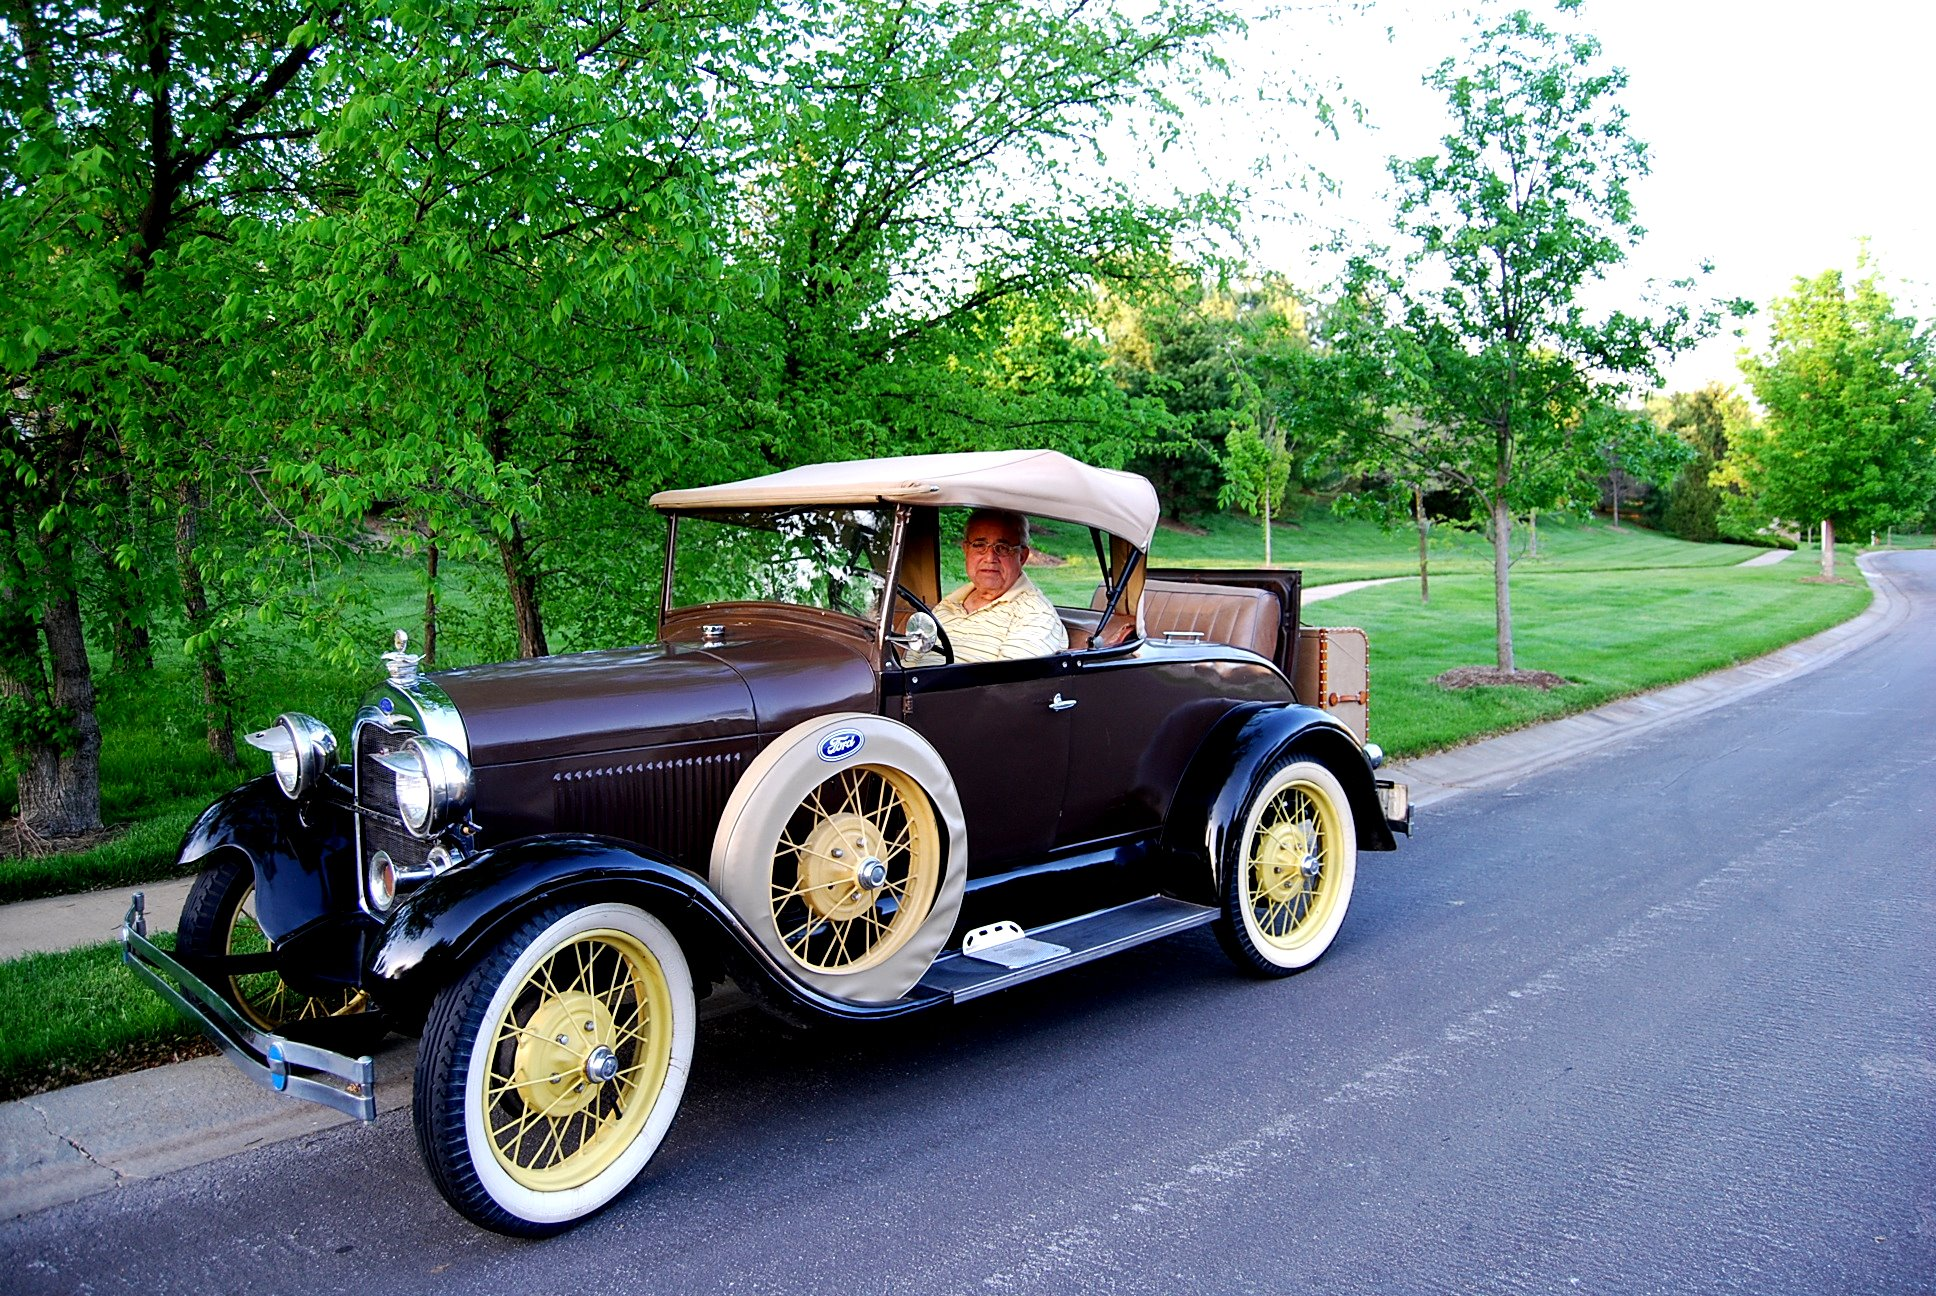 Bmw 2004 5 Series For Sale 1928 Ford Model A - Information and photos - MOMENTcar